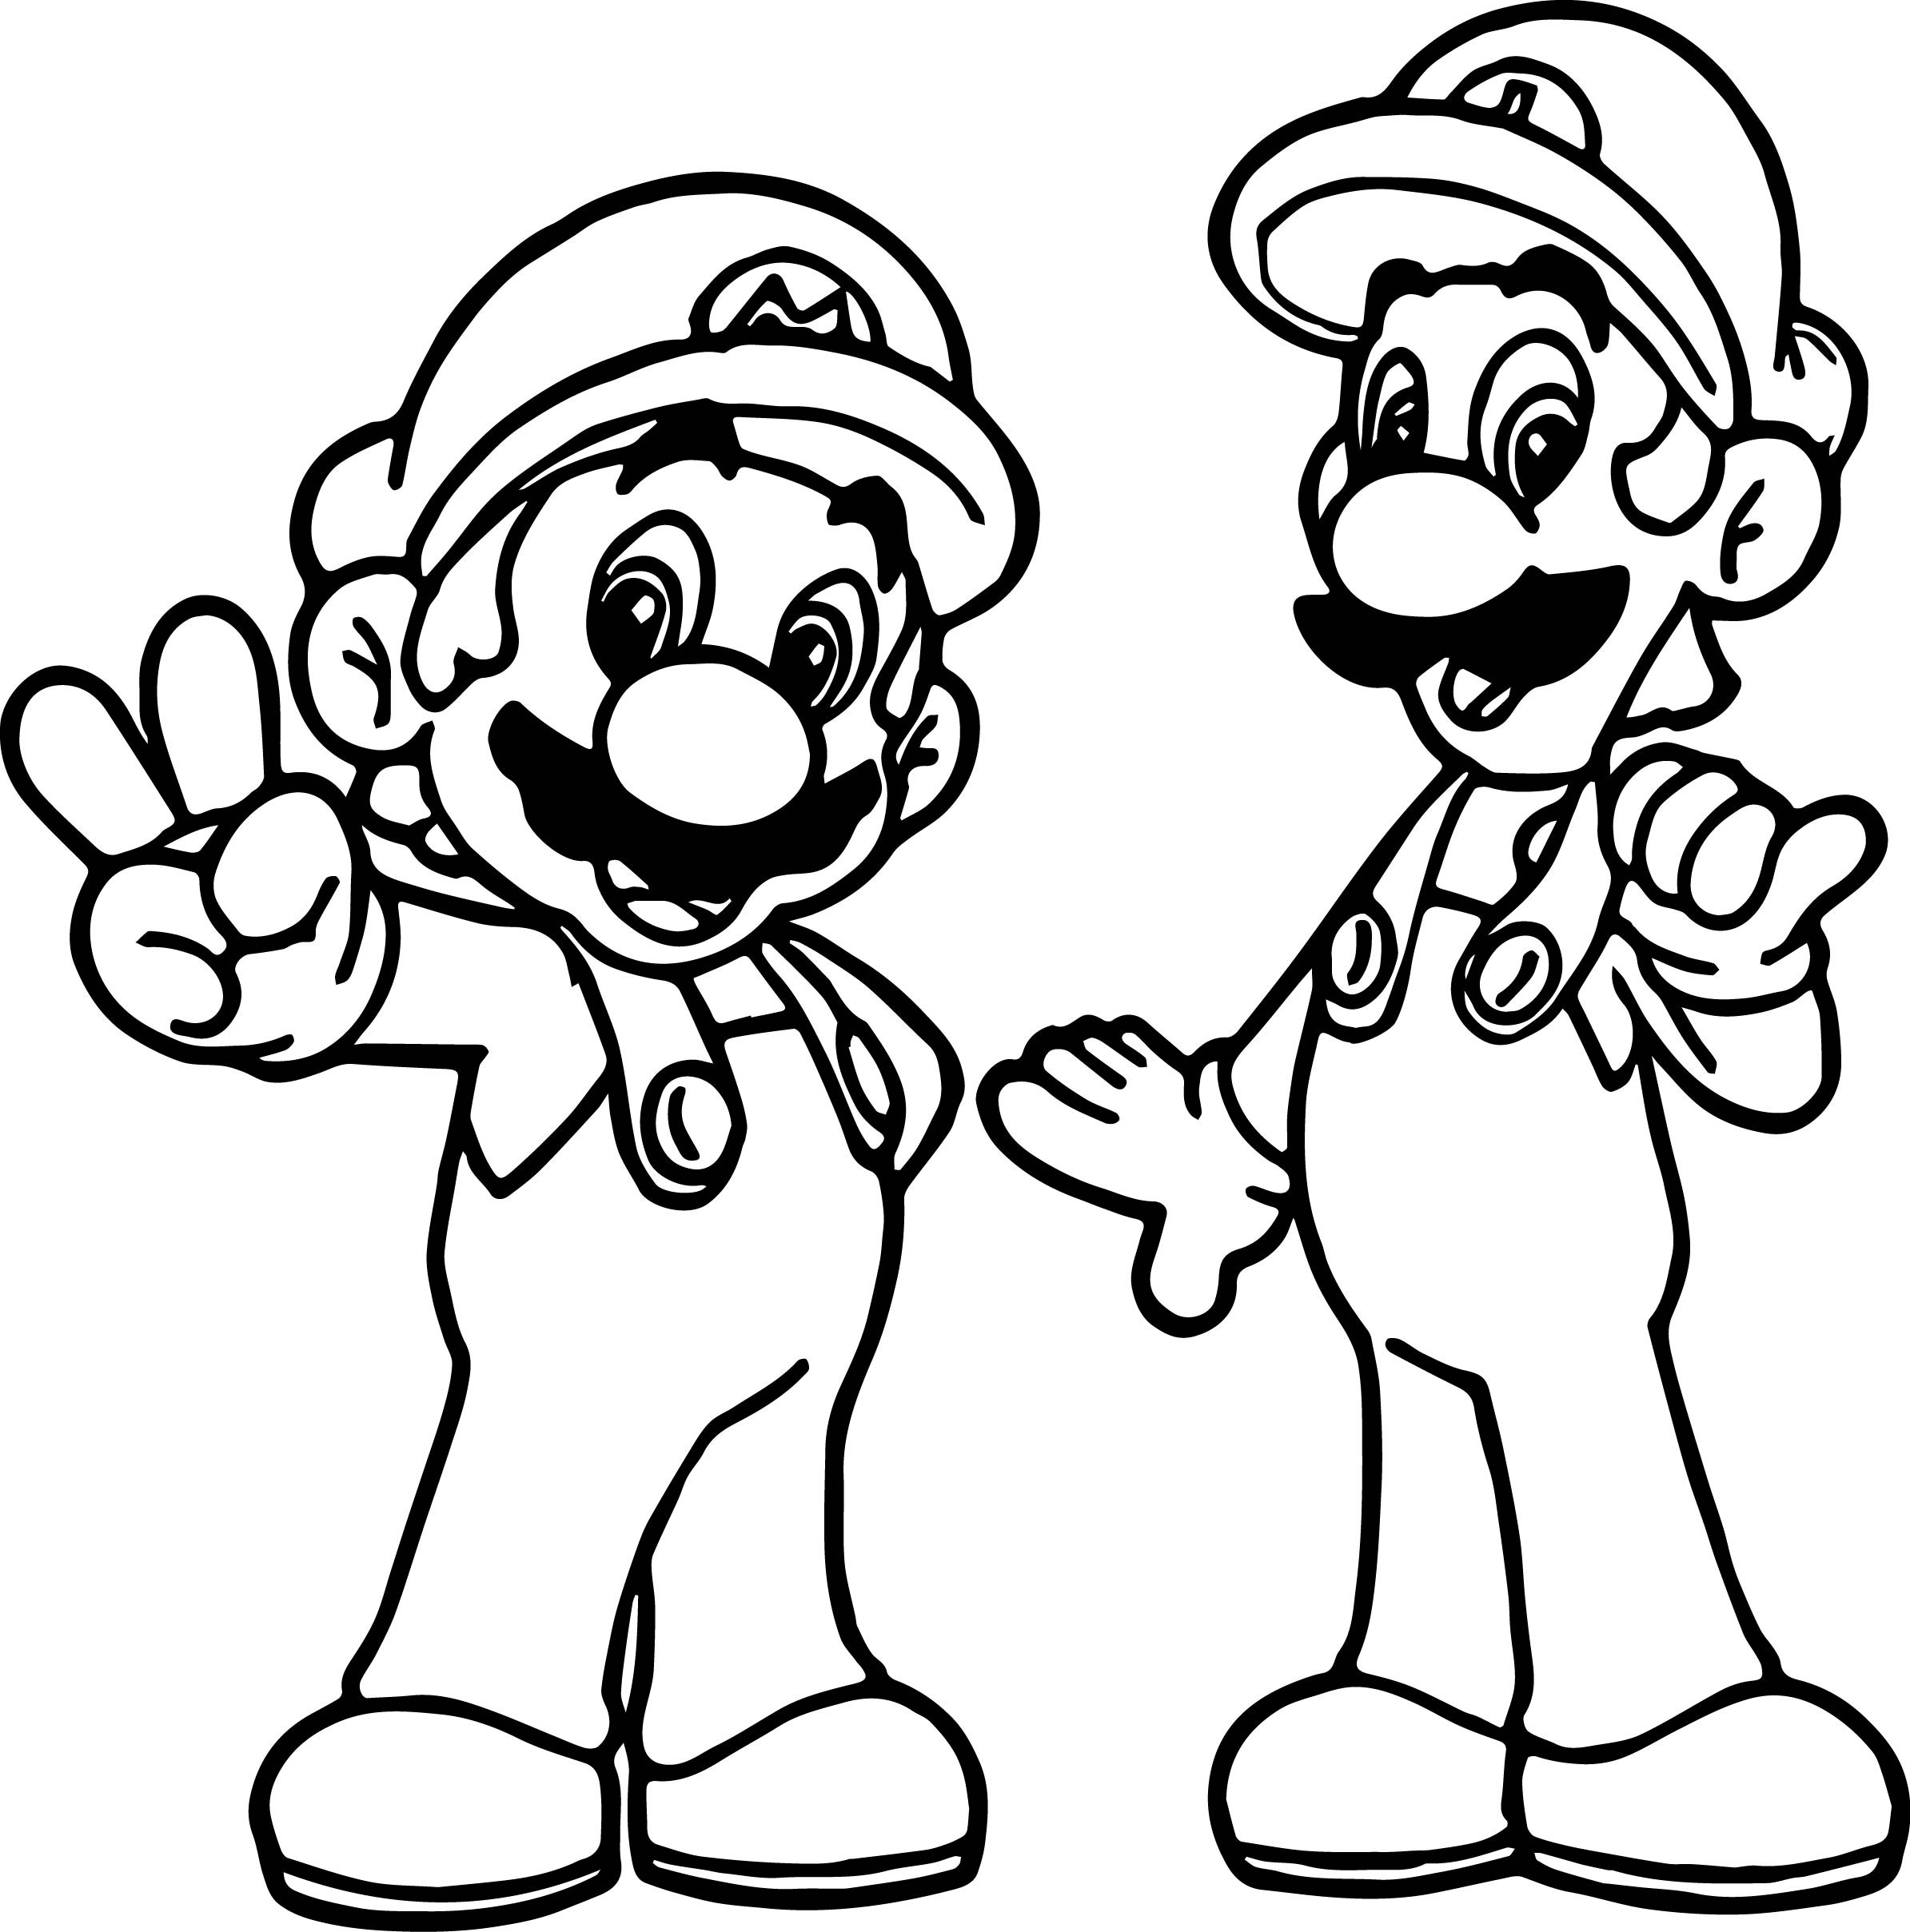 Mario Coloring Pages Download 16e - Free For kids